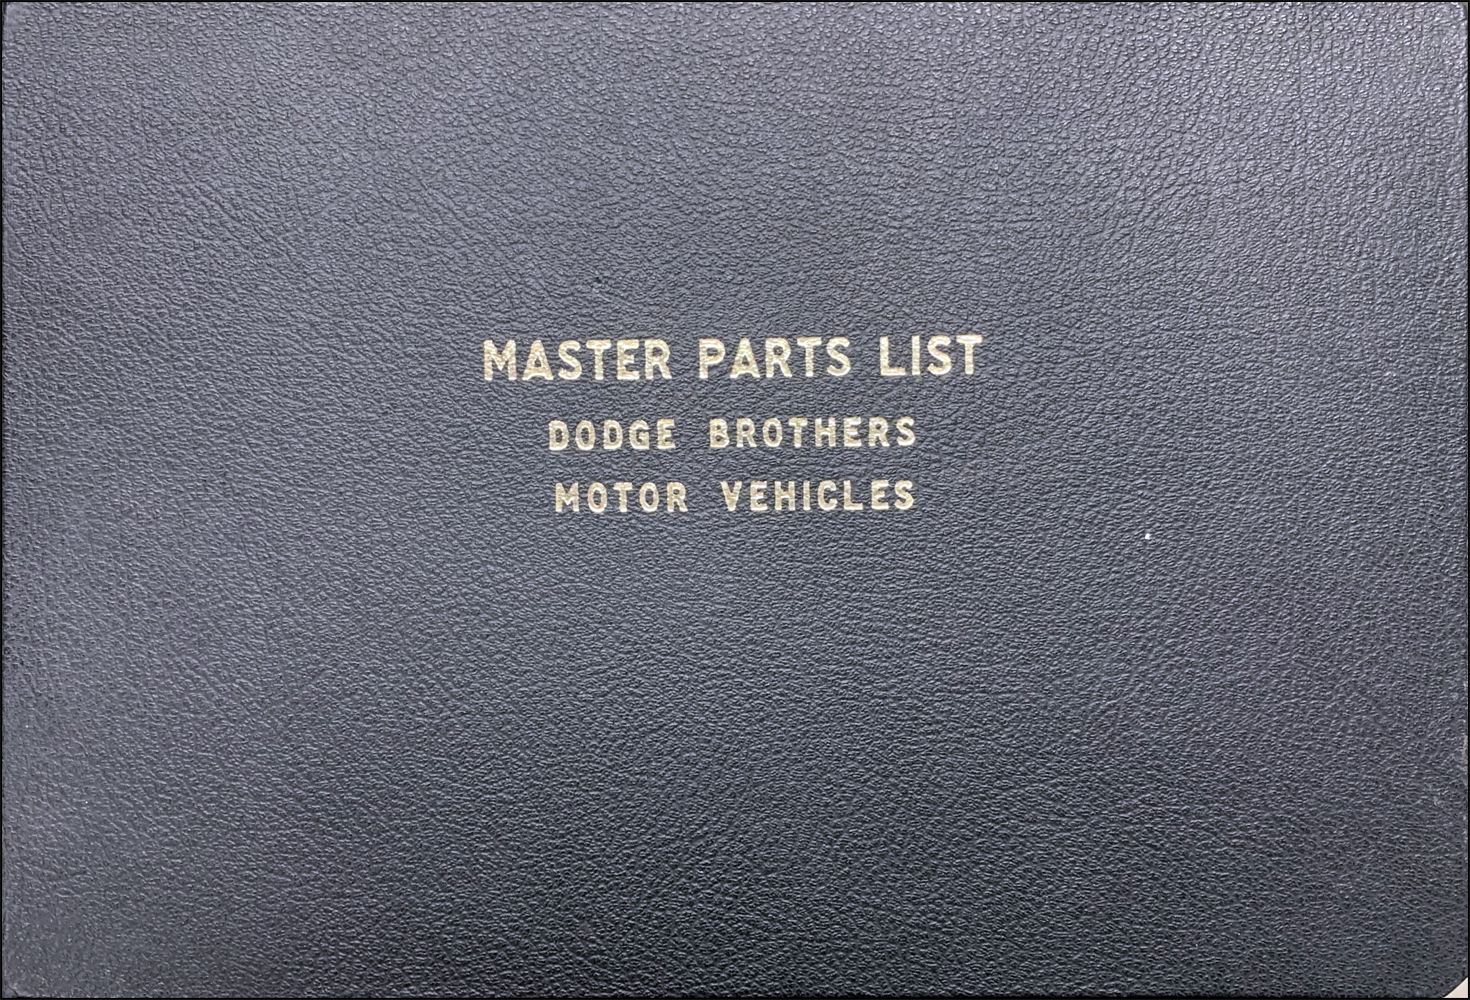 1915-1927 Dodge Parts Book Out-of-Print Reprint